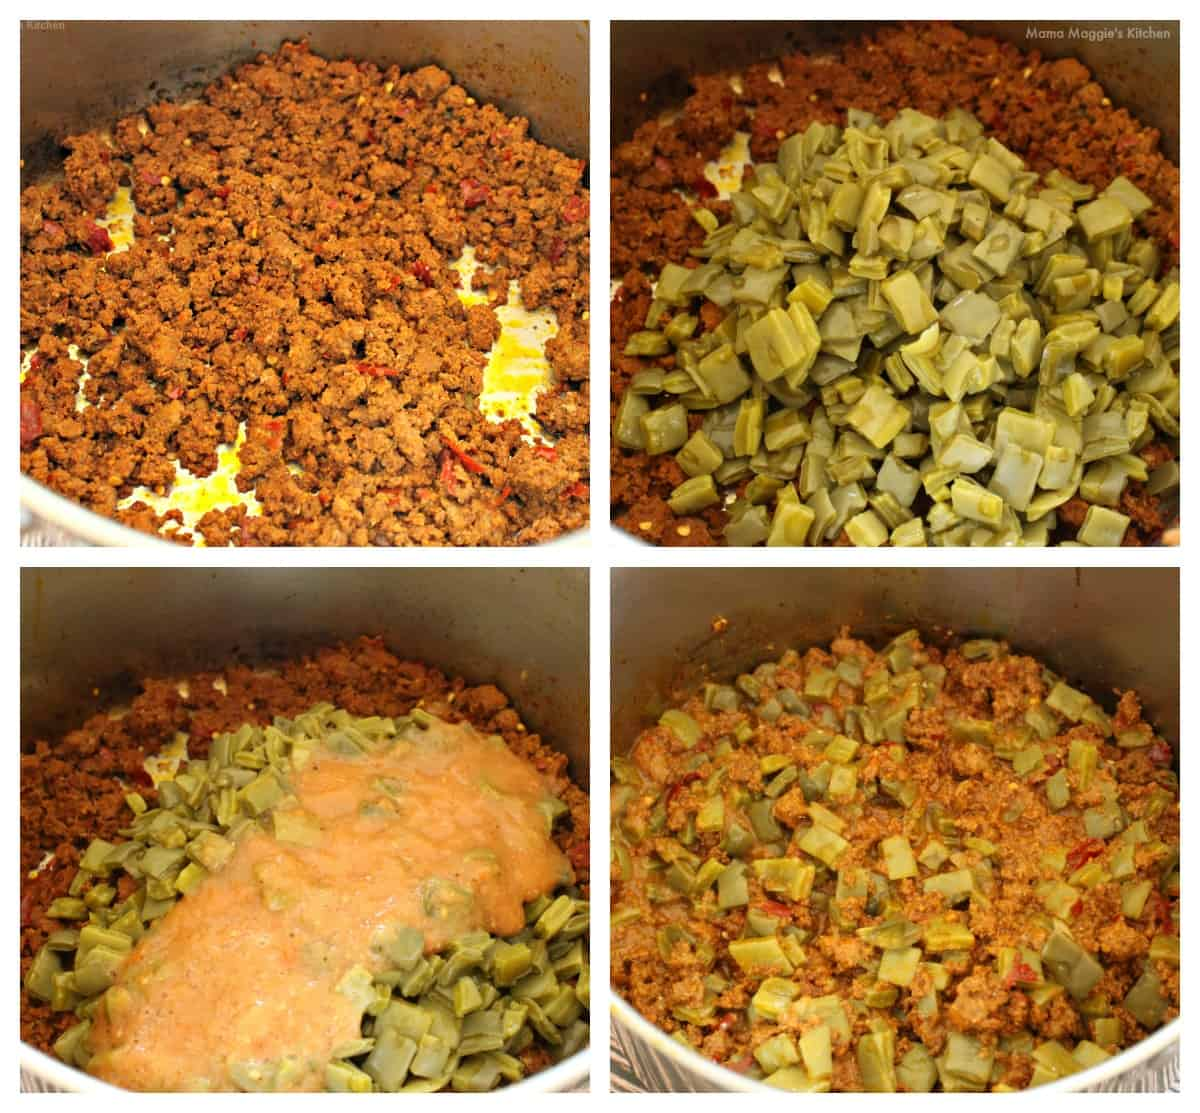 A collage showing how to make Nopales con Chorizo in a stock pot.